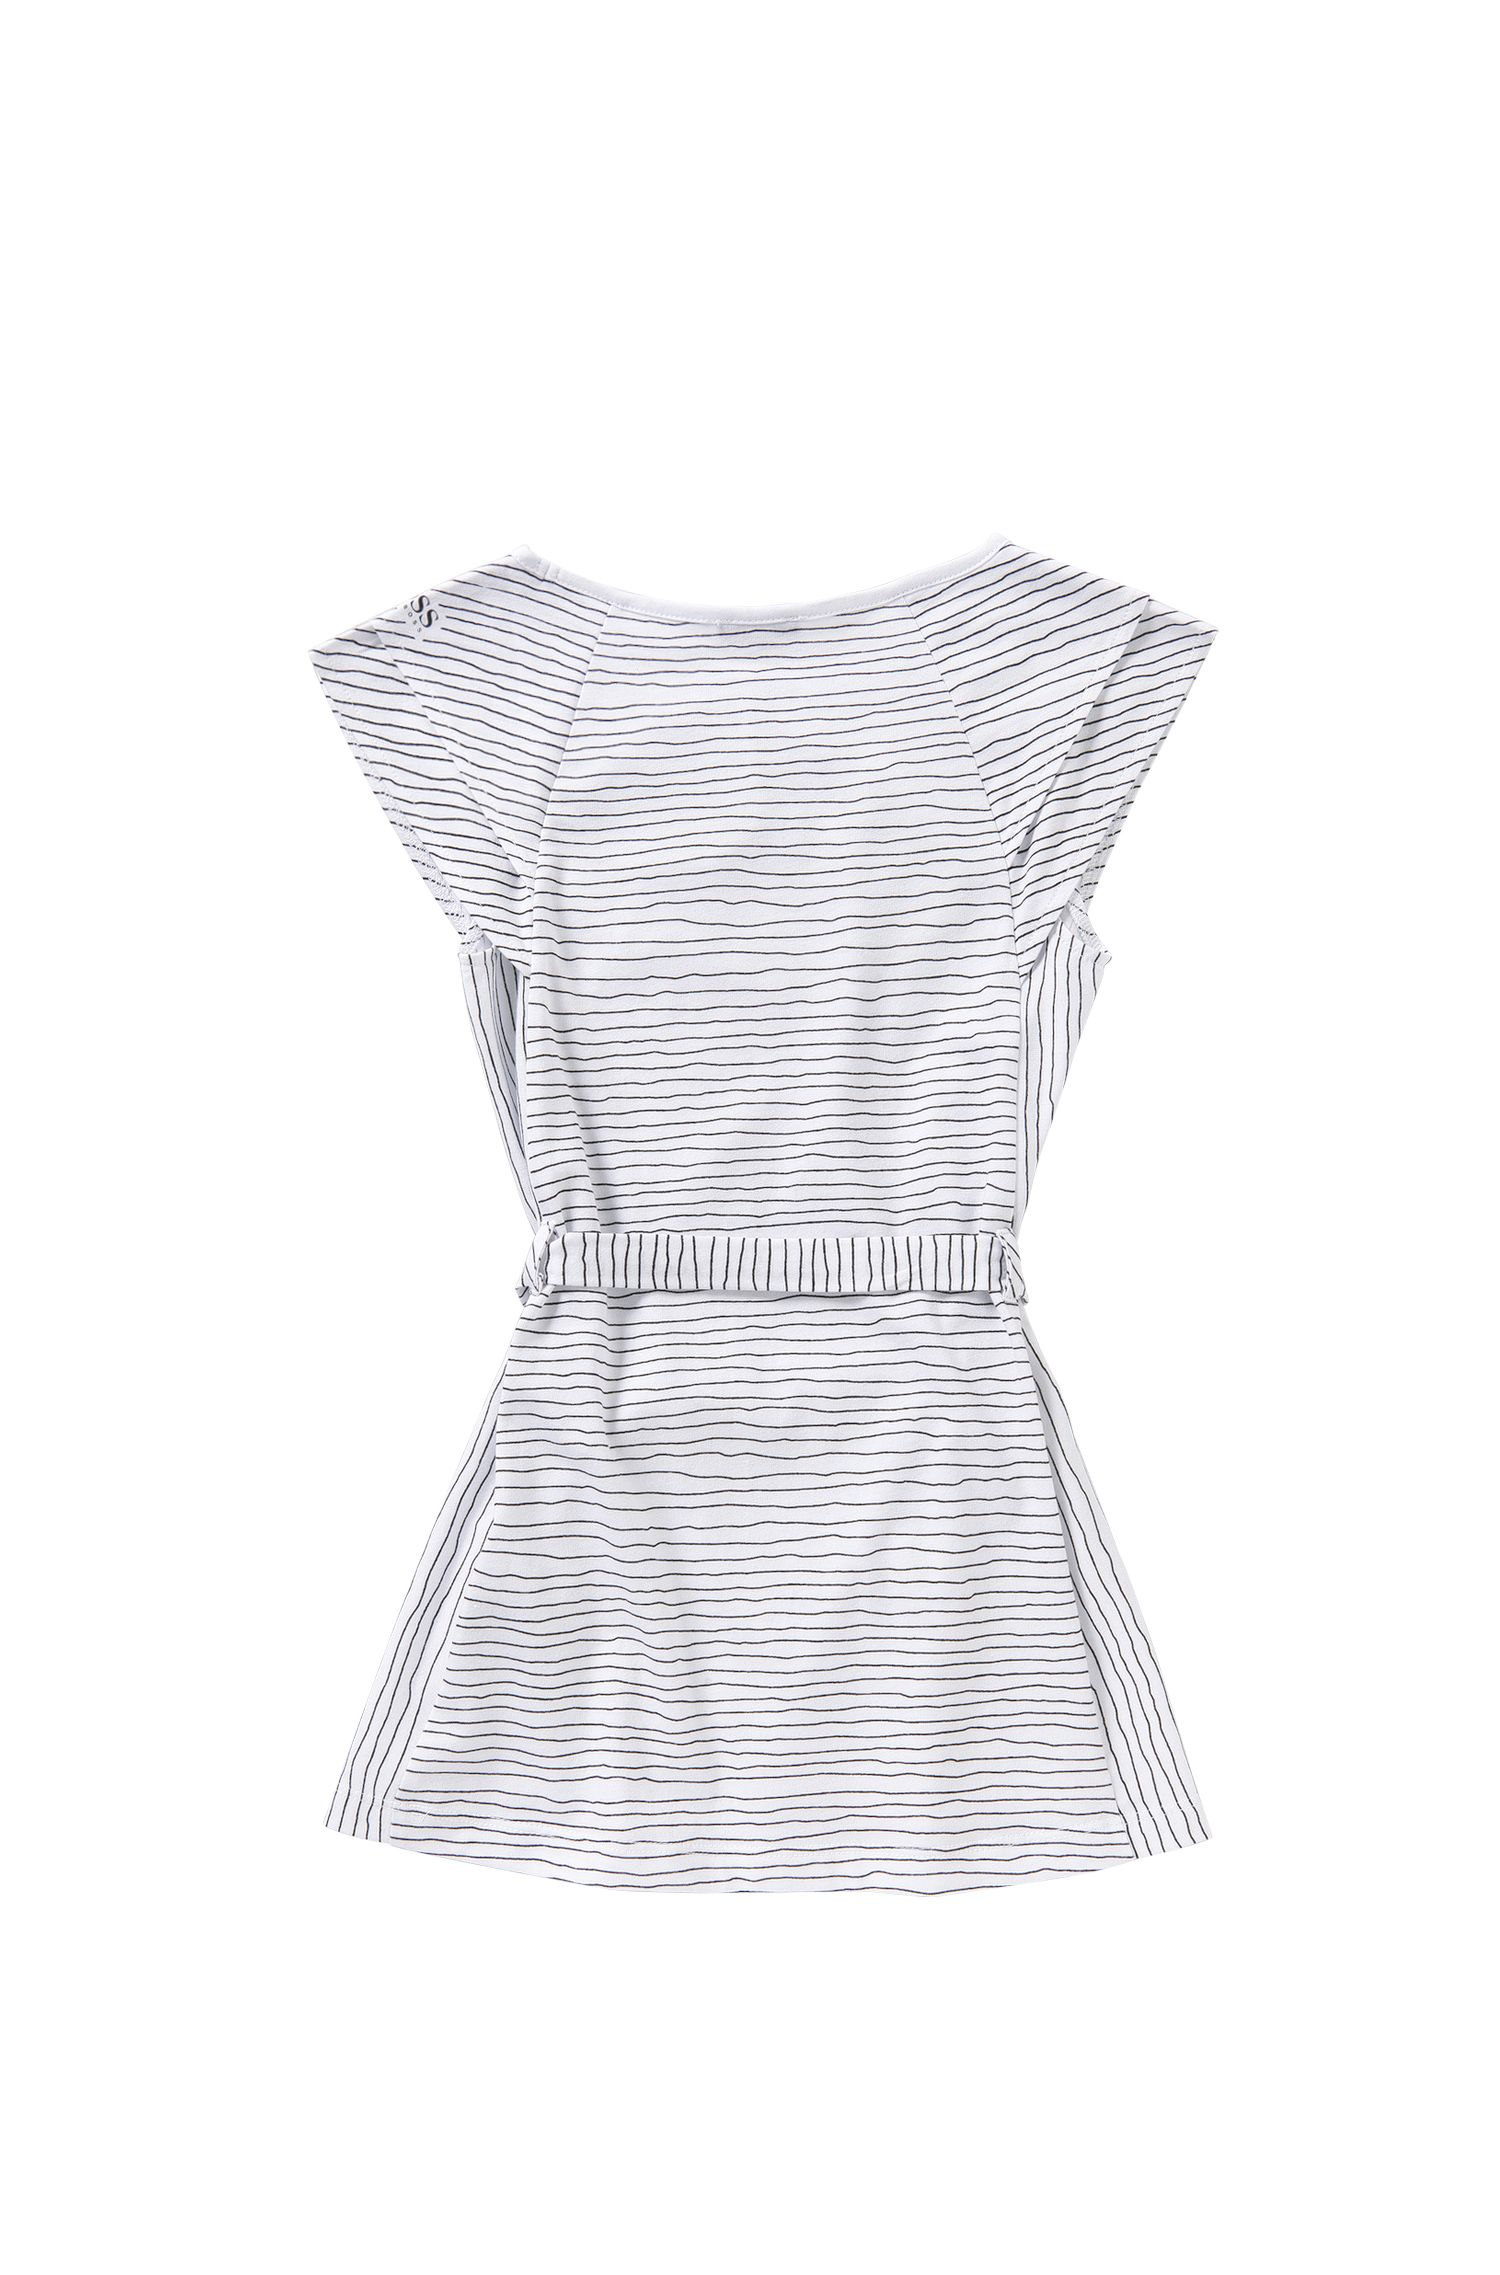 'J12148' | Girls Modal Jersey Belted Striped Dress